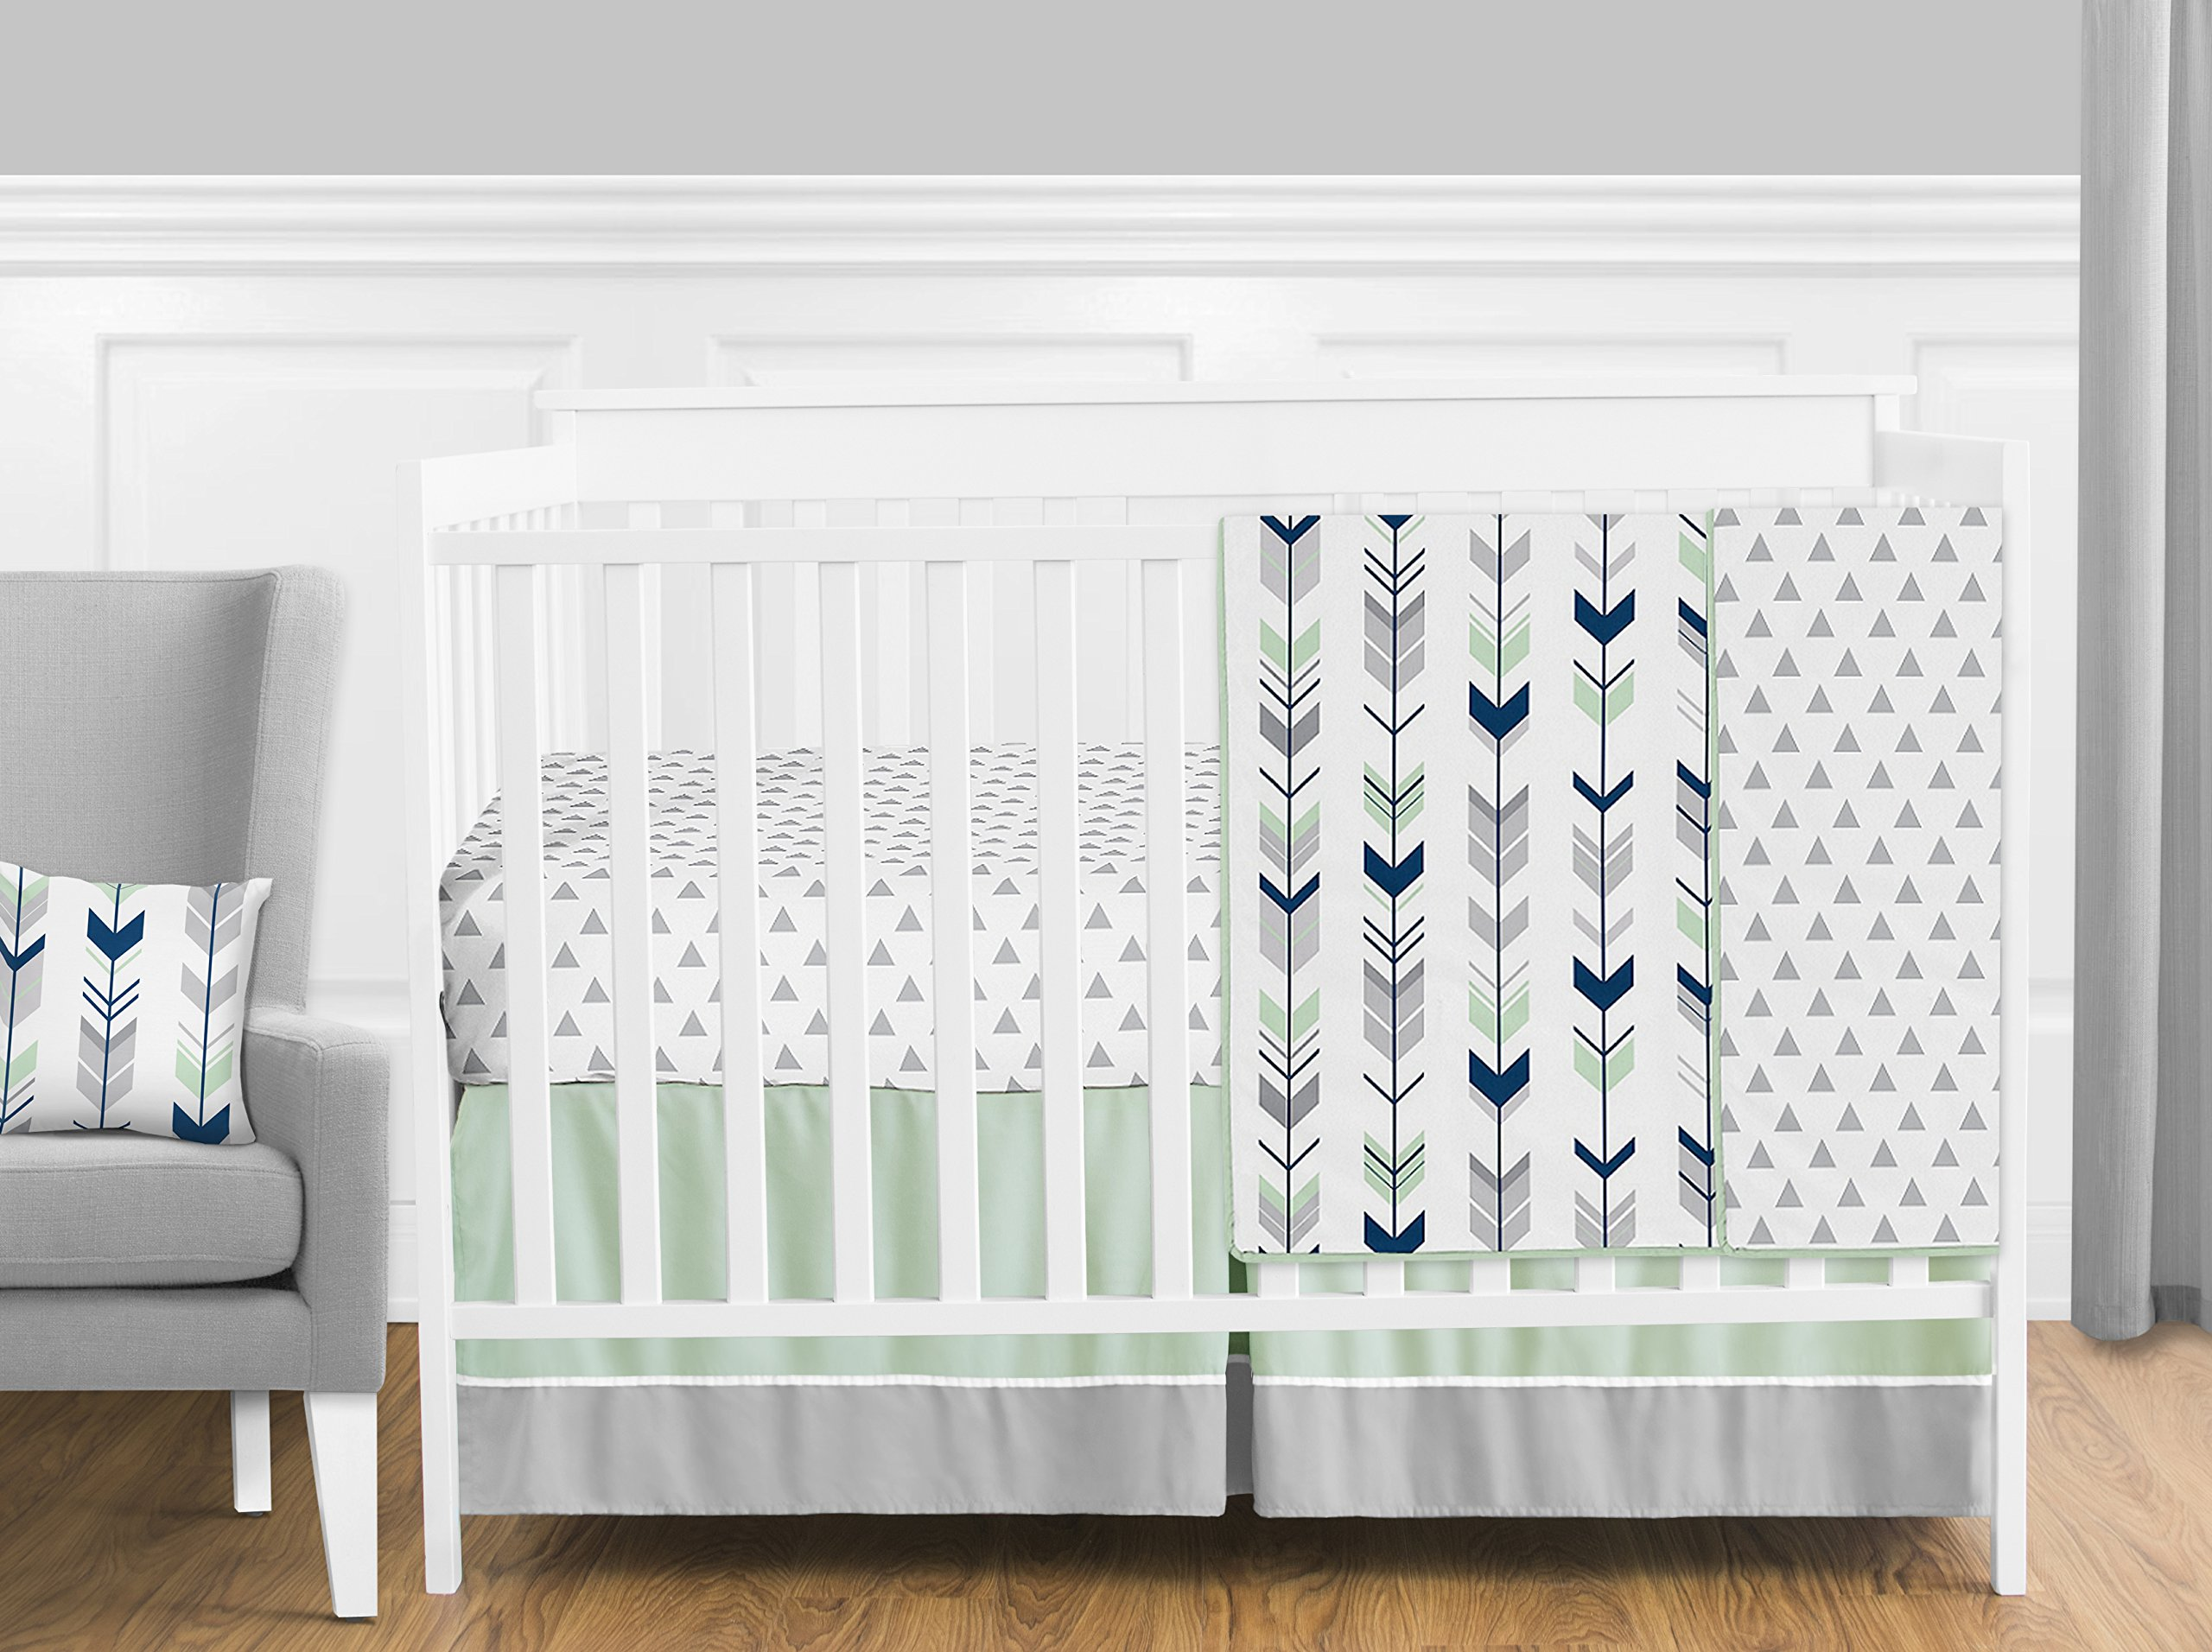 Sweet Jojo Designs 11-Piece Grey, Navy Blue and Mint Woodland Arrow Baby Boy or Girl Crib Bed Bedding Set Without Bumper by Sweet Jojo Designs